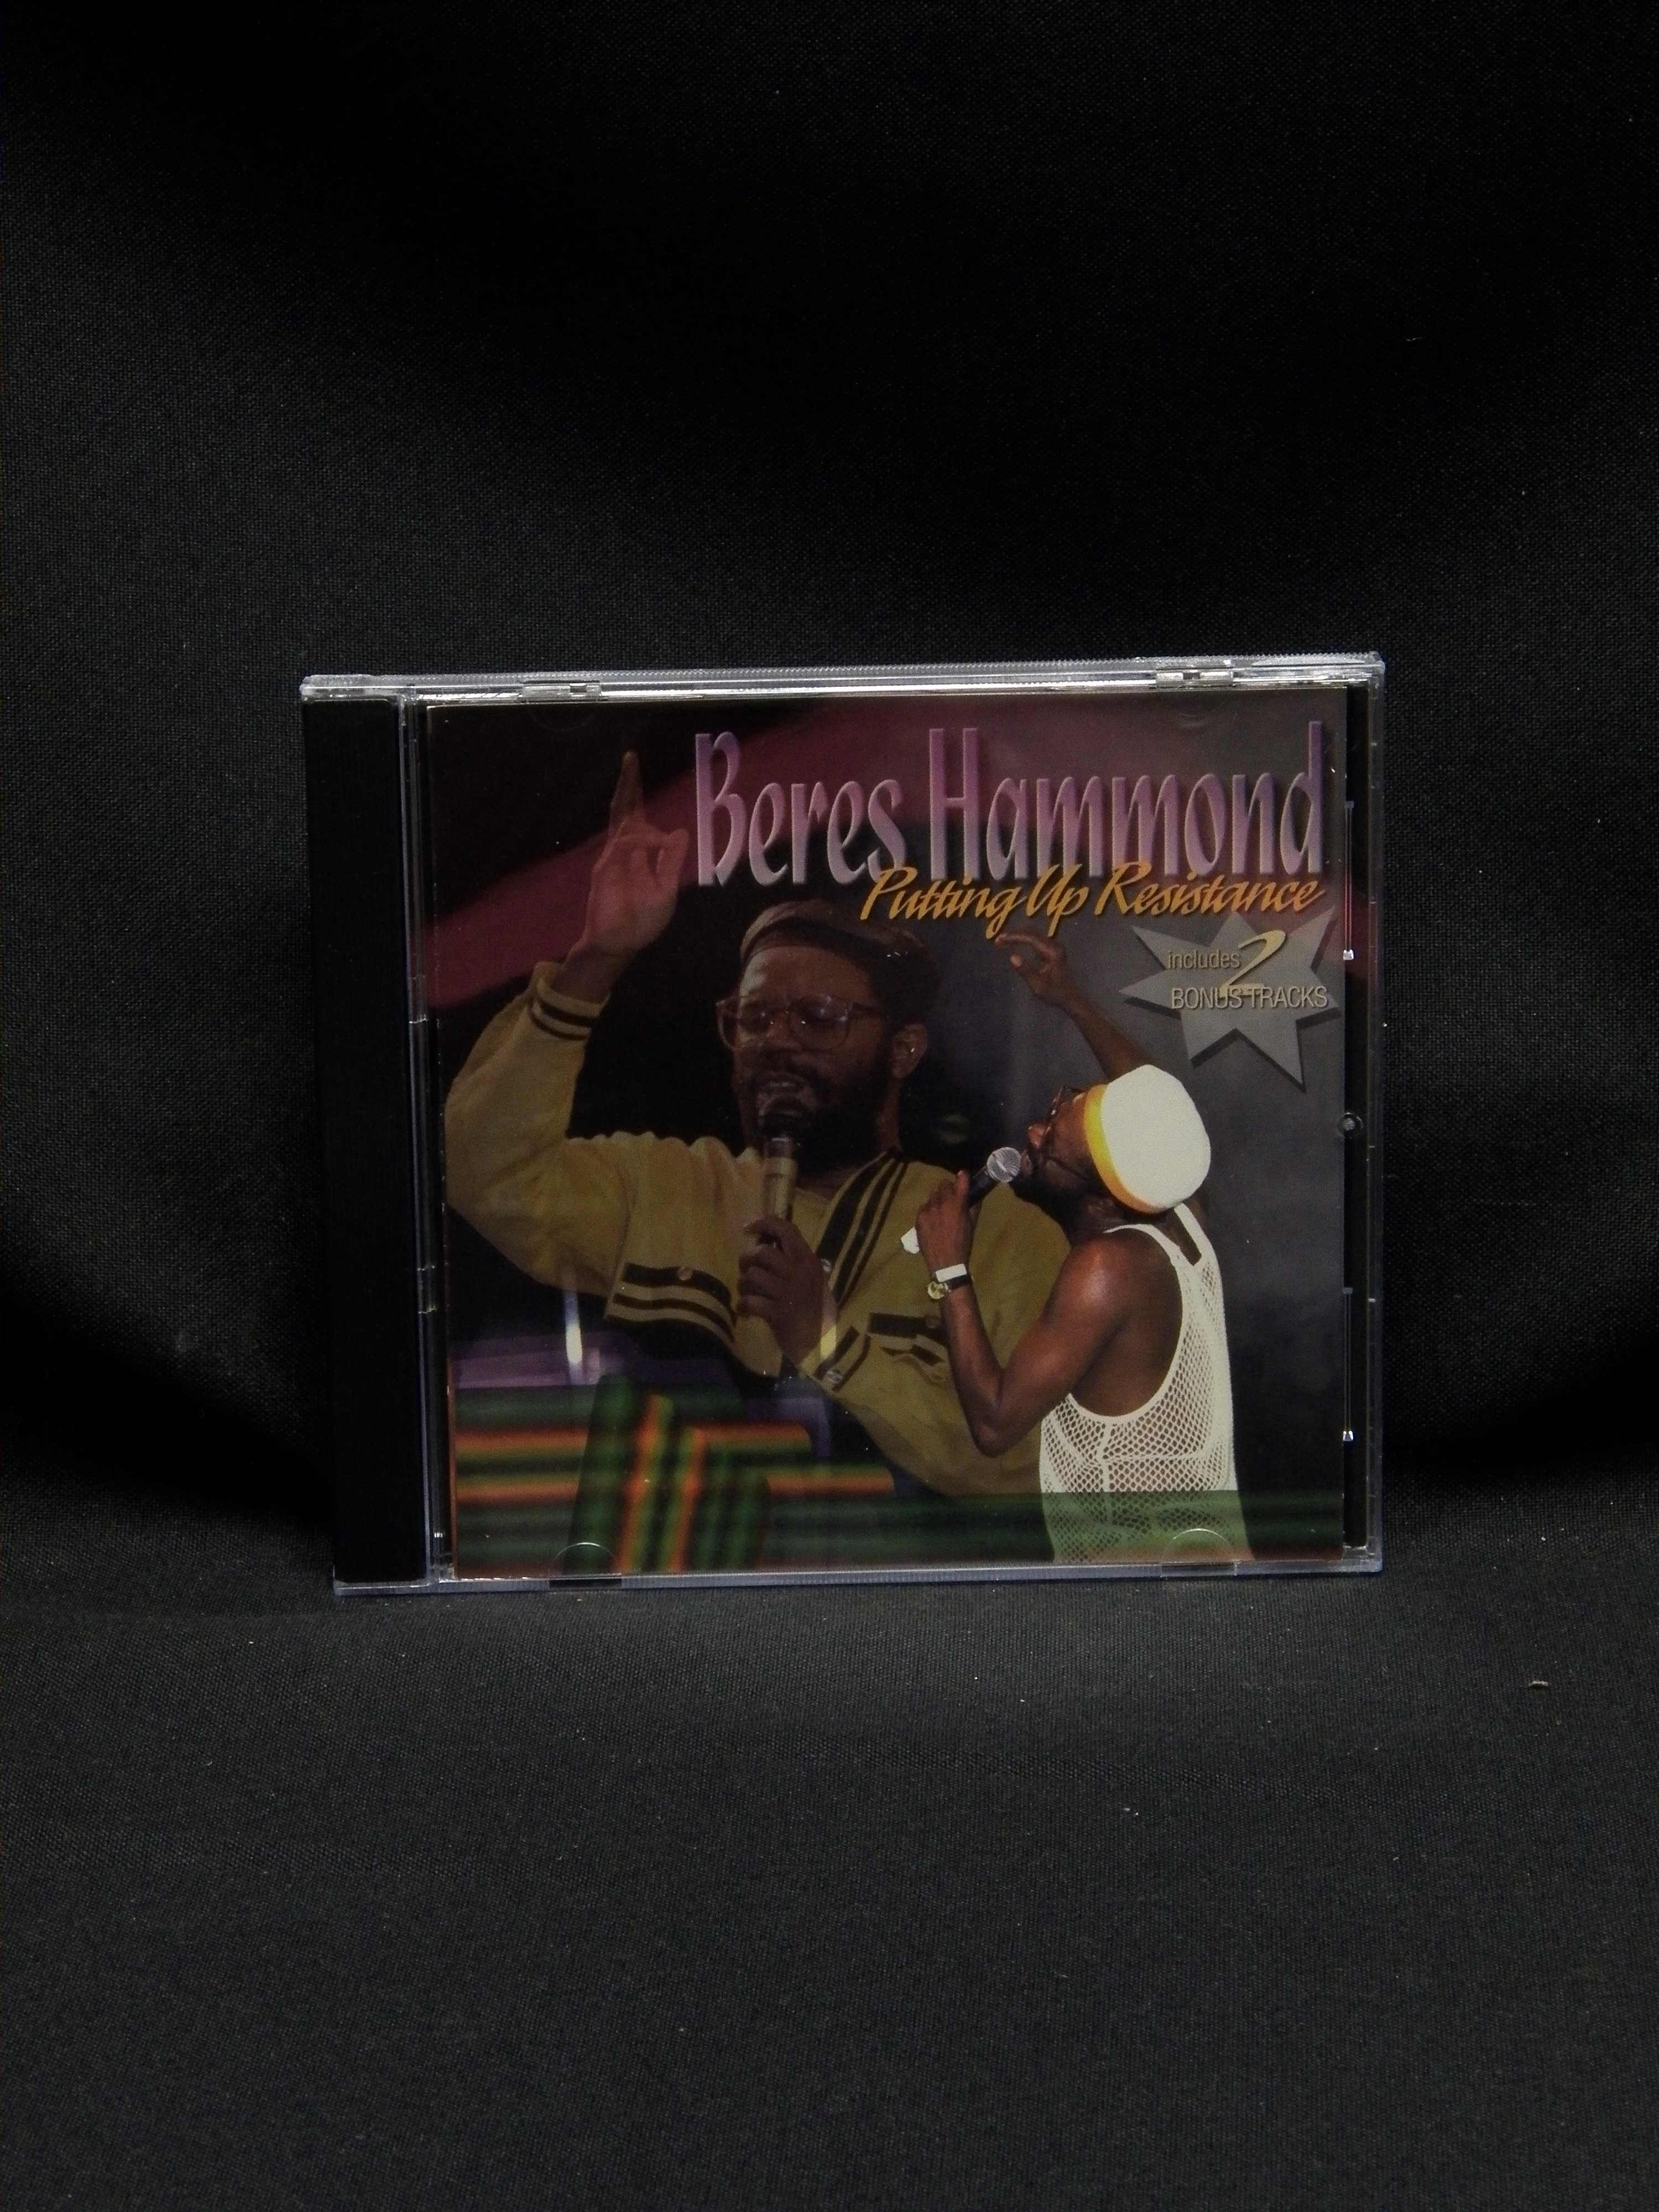 used cd beres hammond putting up resistance 1996 ras records